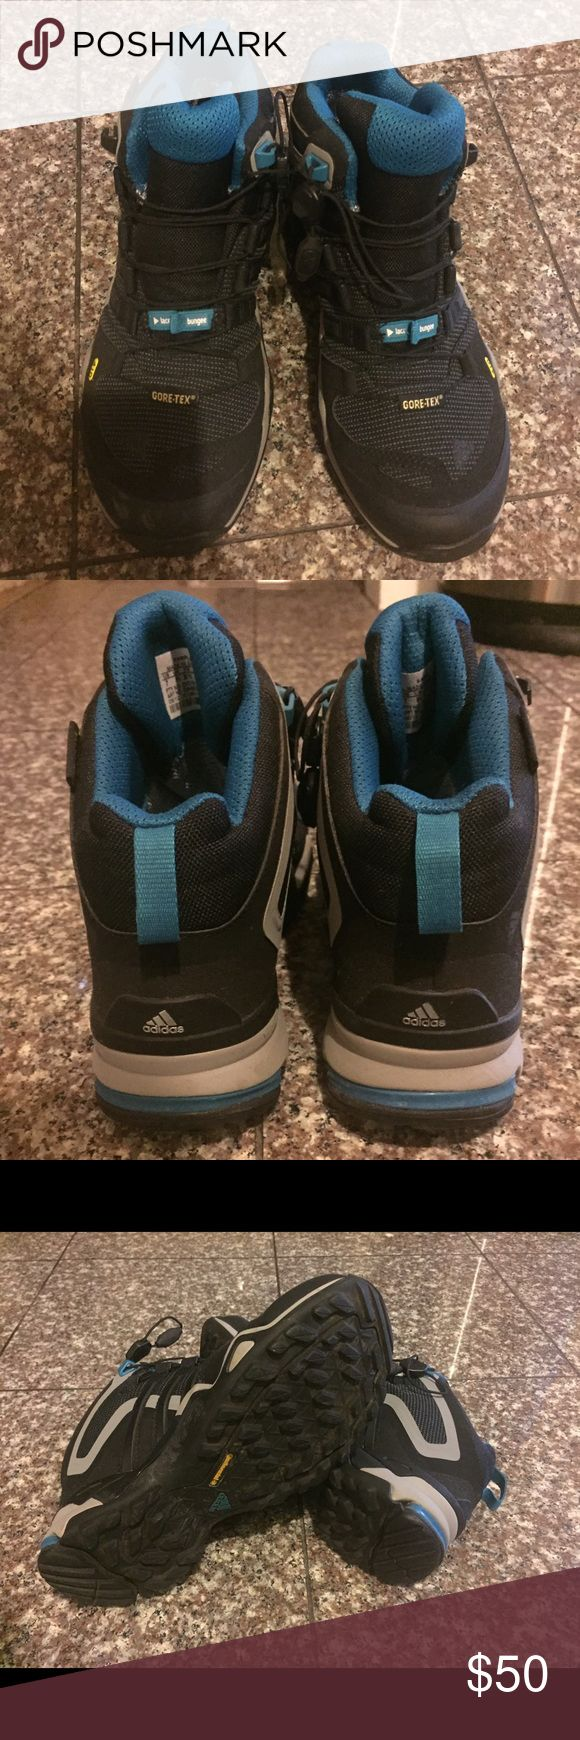 Women's size 7 adidas trail hiking ankle boots Like new condition. Only worn once. I no longer have time to hike. Women's size 7. Provides ankle support Adidas Shoes Lace Up Boots